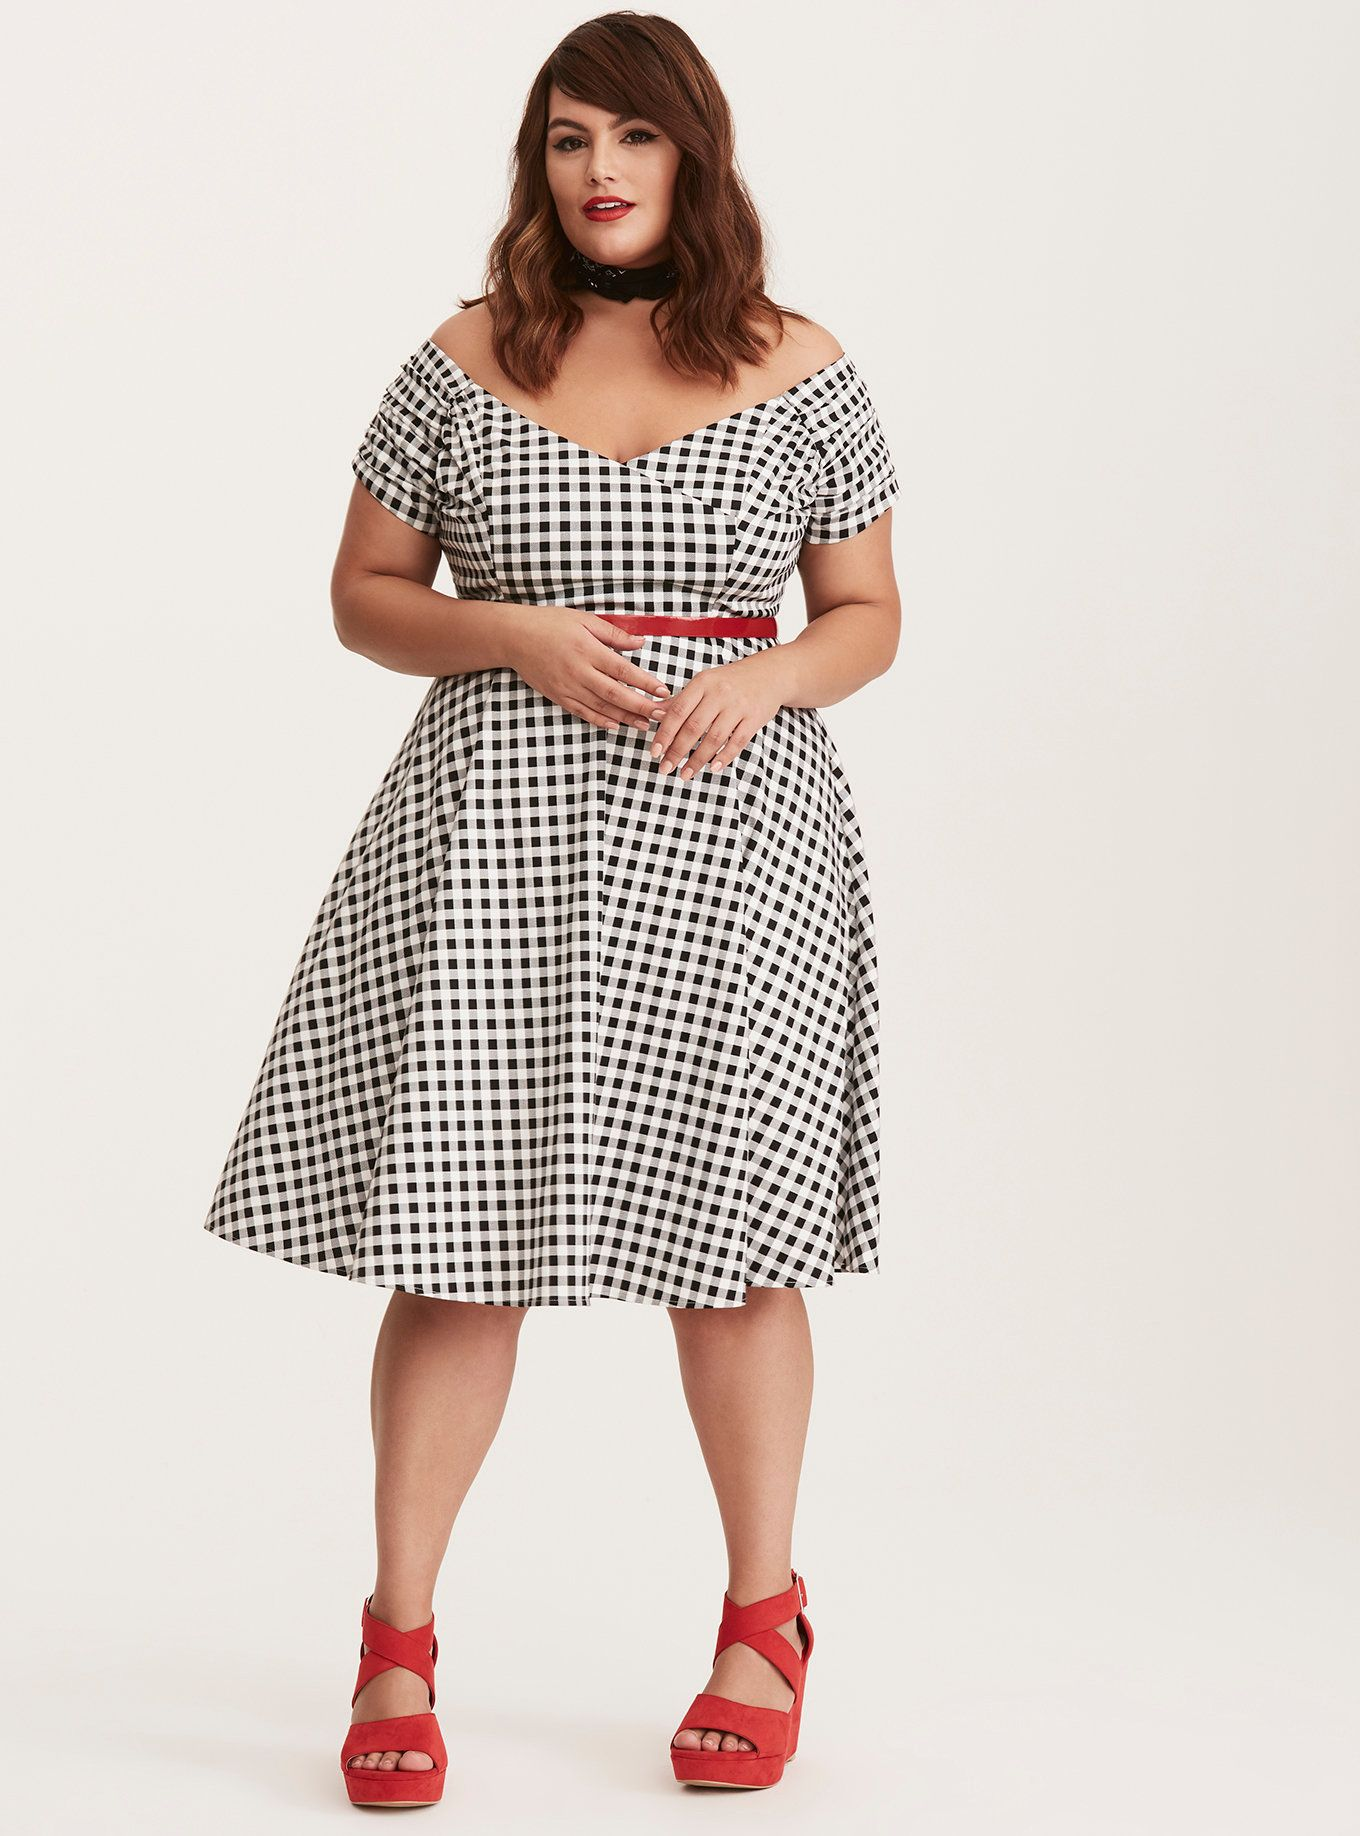 914123547b35 It doesn t get much sweeter than this swing dress! The fitted bodice is  flirtier than ever with off shoulder sleeves and slightly shirred details.